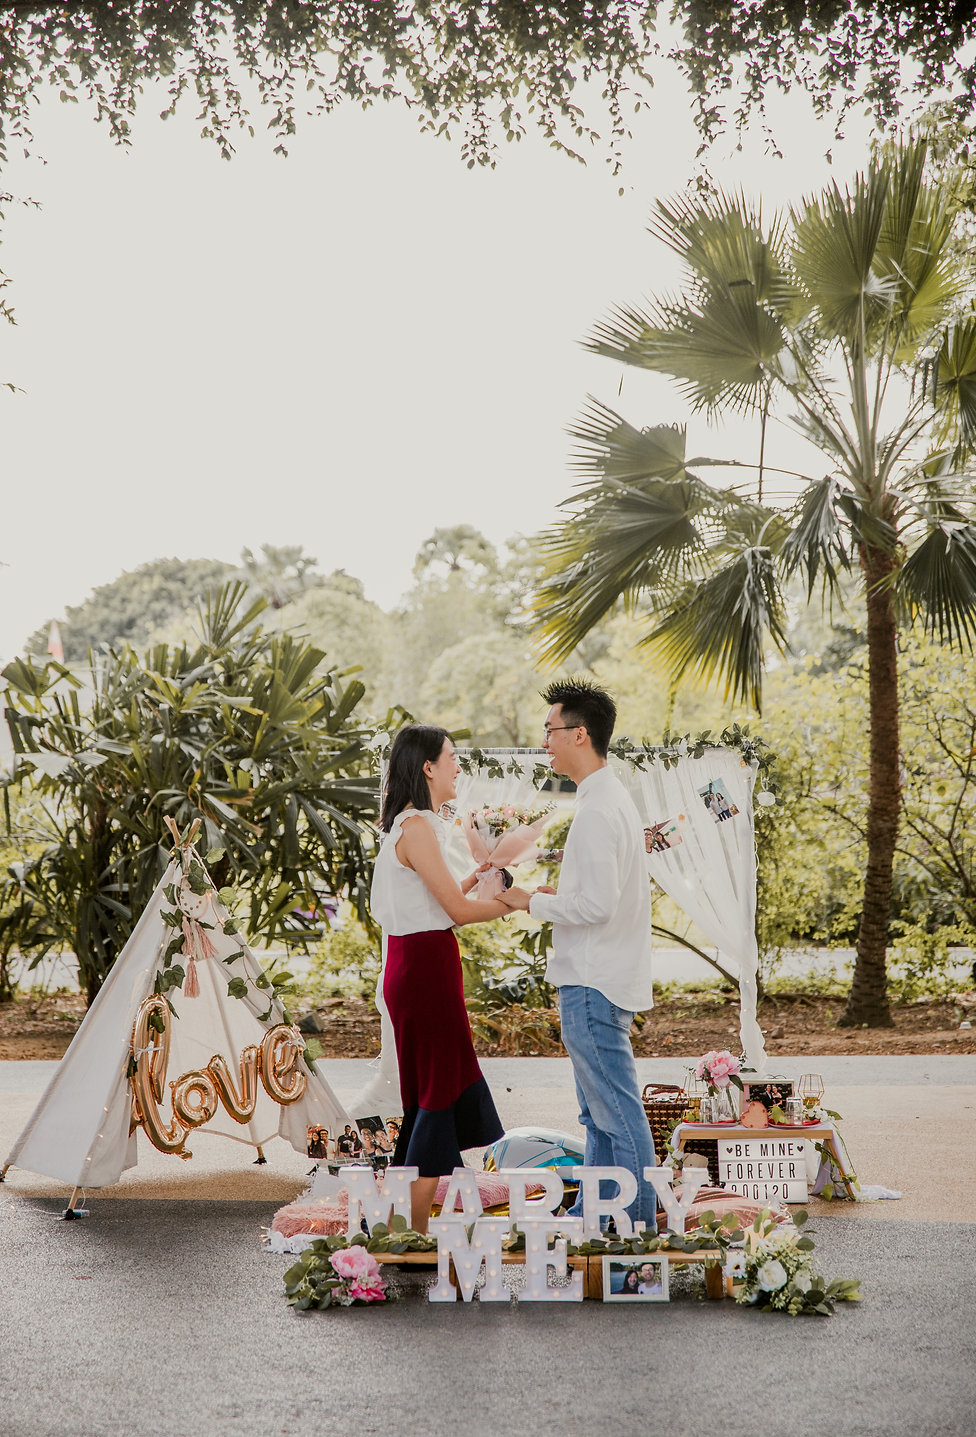 Wedding proposal outdoor photoshoot Singapore